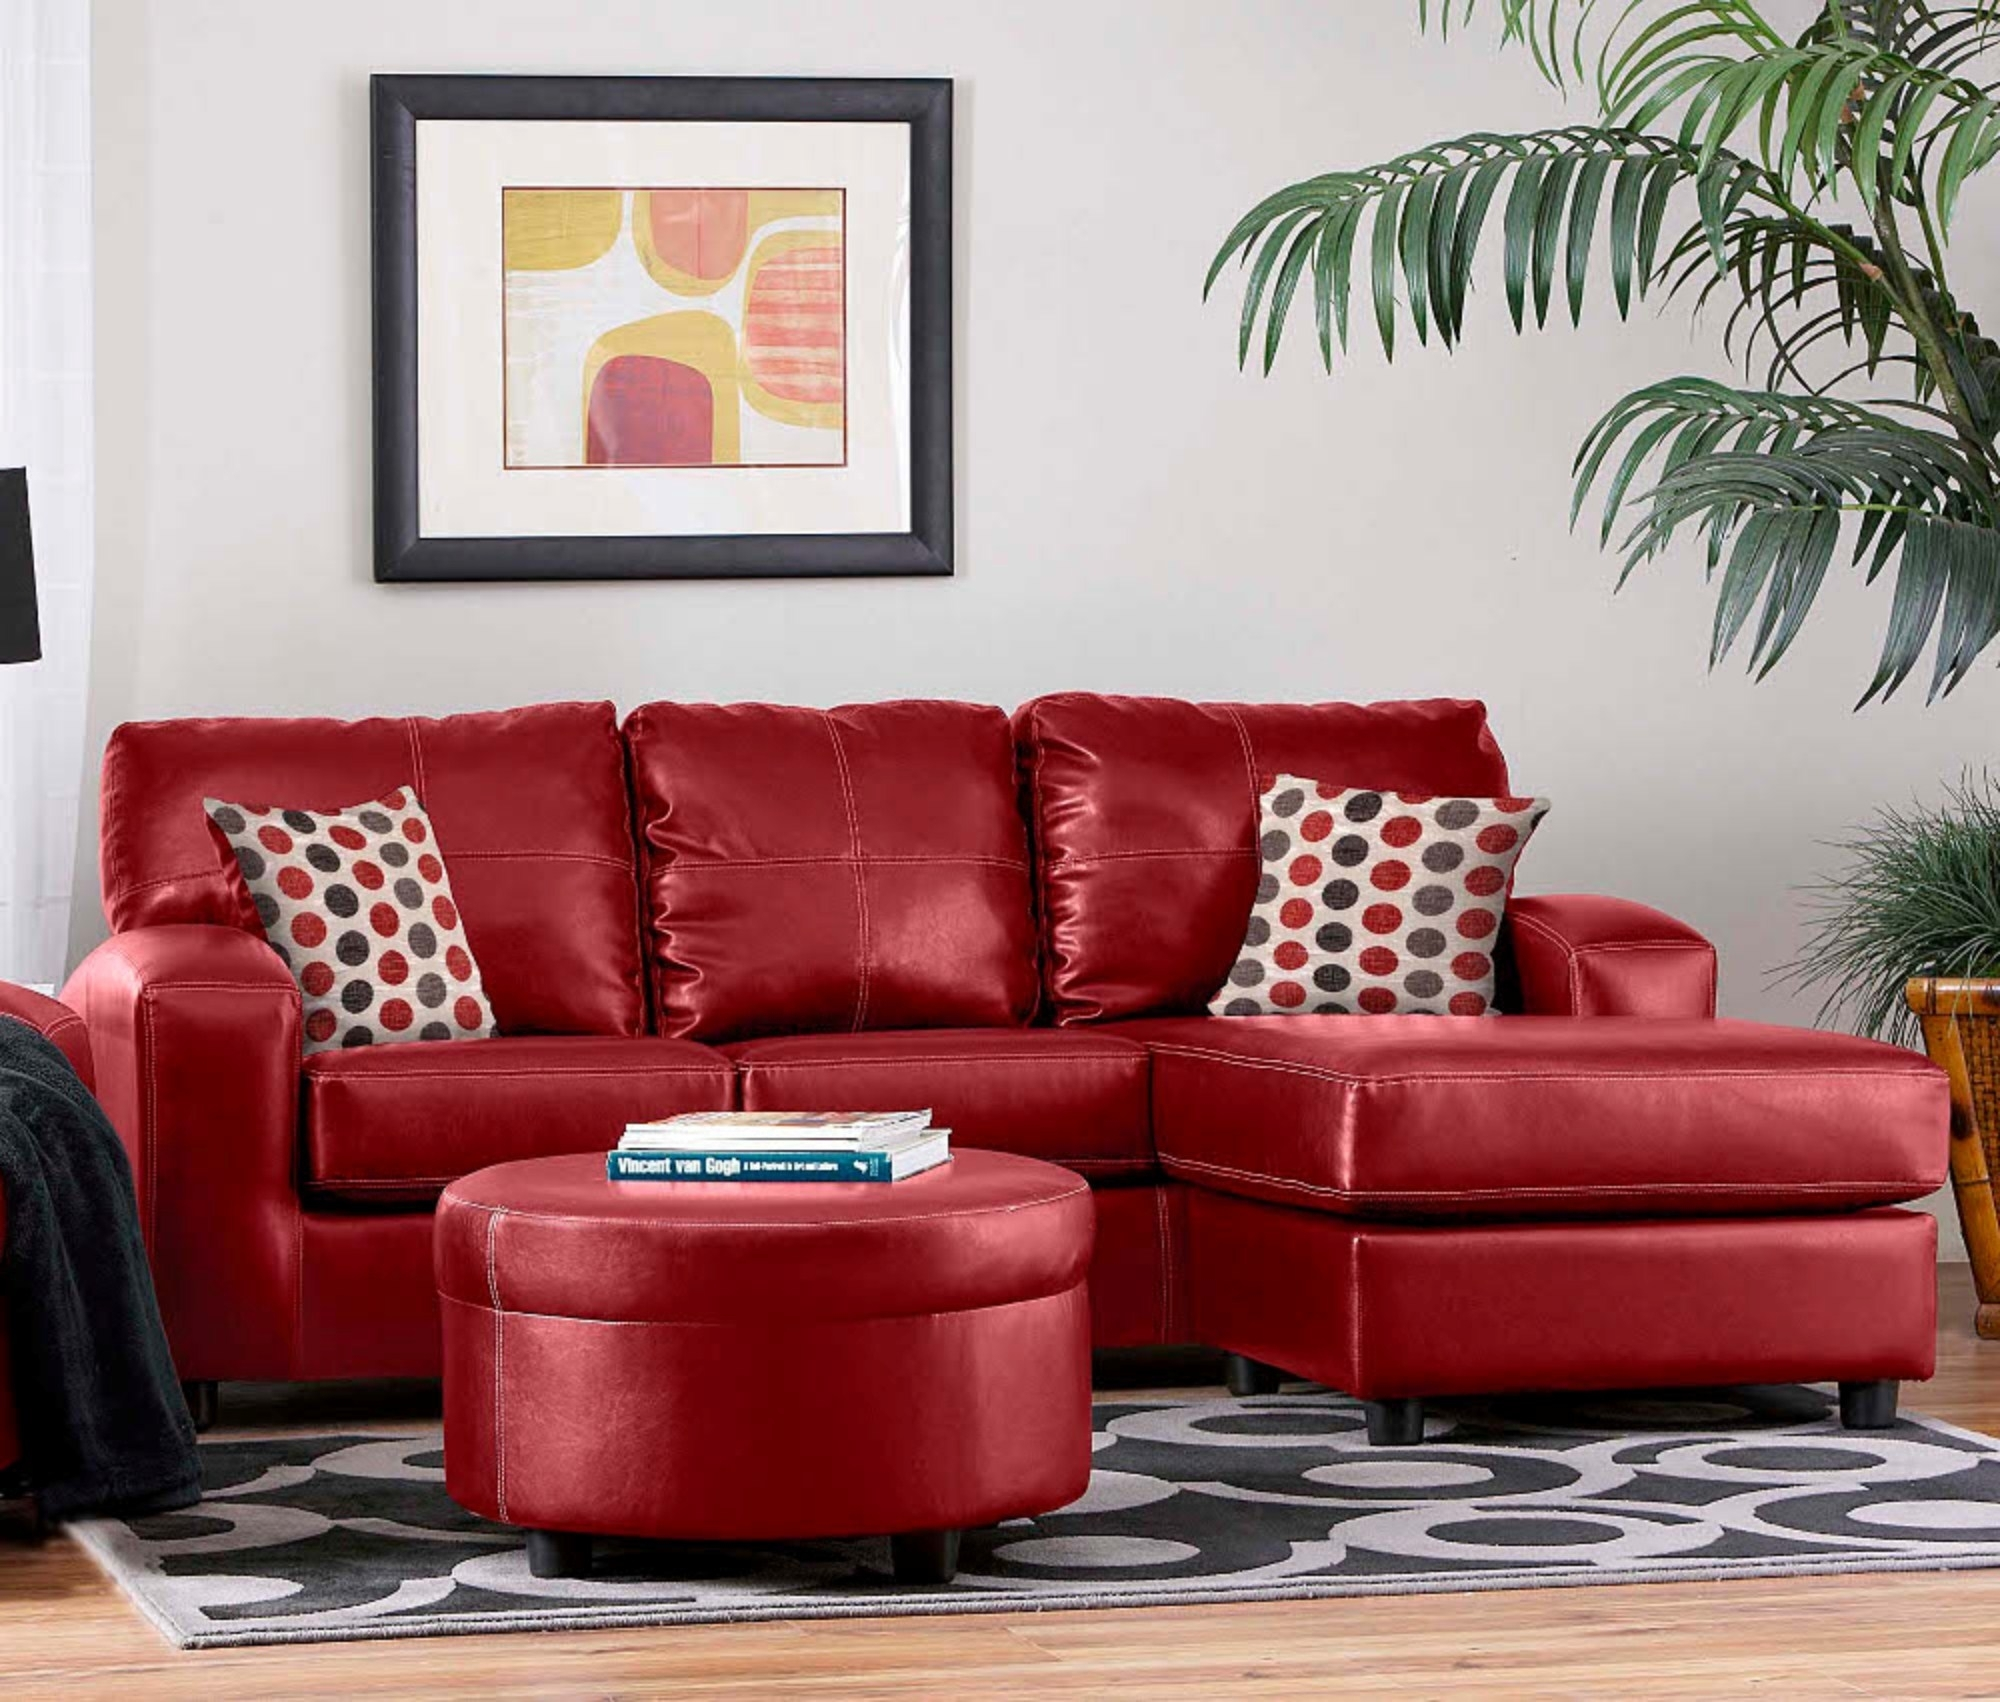 Grey Living Room Red Couch Imanada Leather Sectional Sofa With within Red Leather Sectional Sofas With Ottoman (Image 4 of 15)